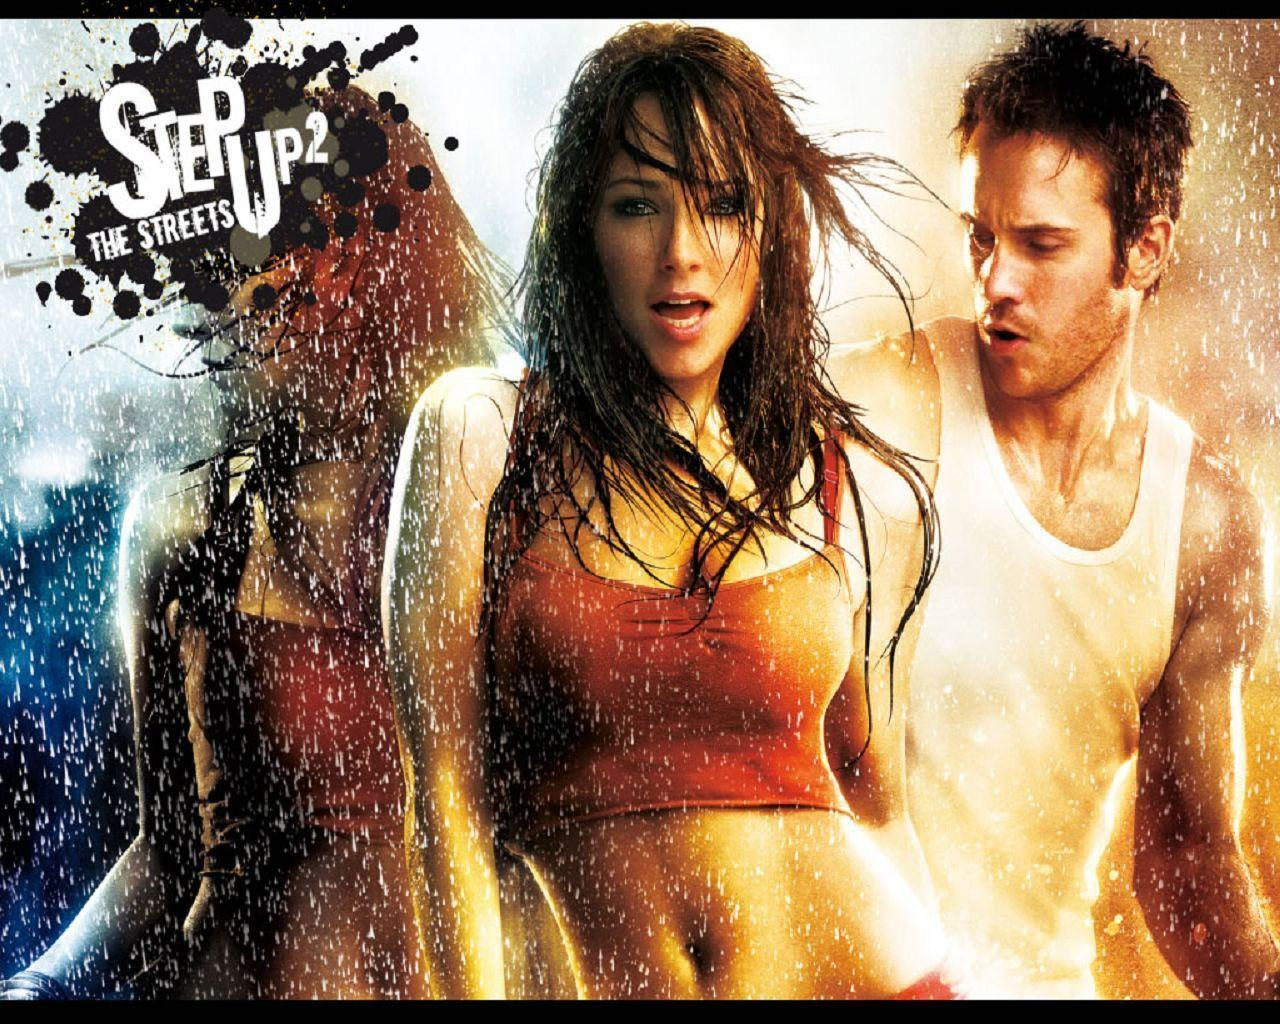 STEP UP 2 | Step up | Pinterest | Cinema, Step up and Wallpapers